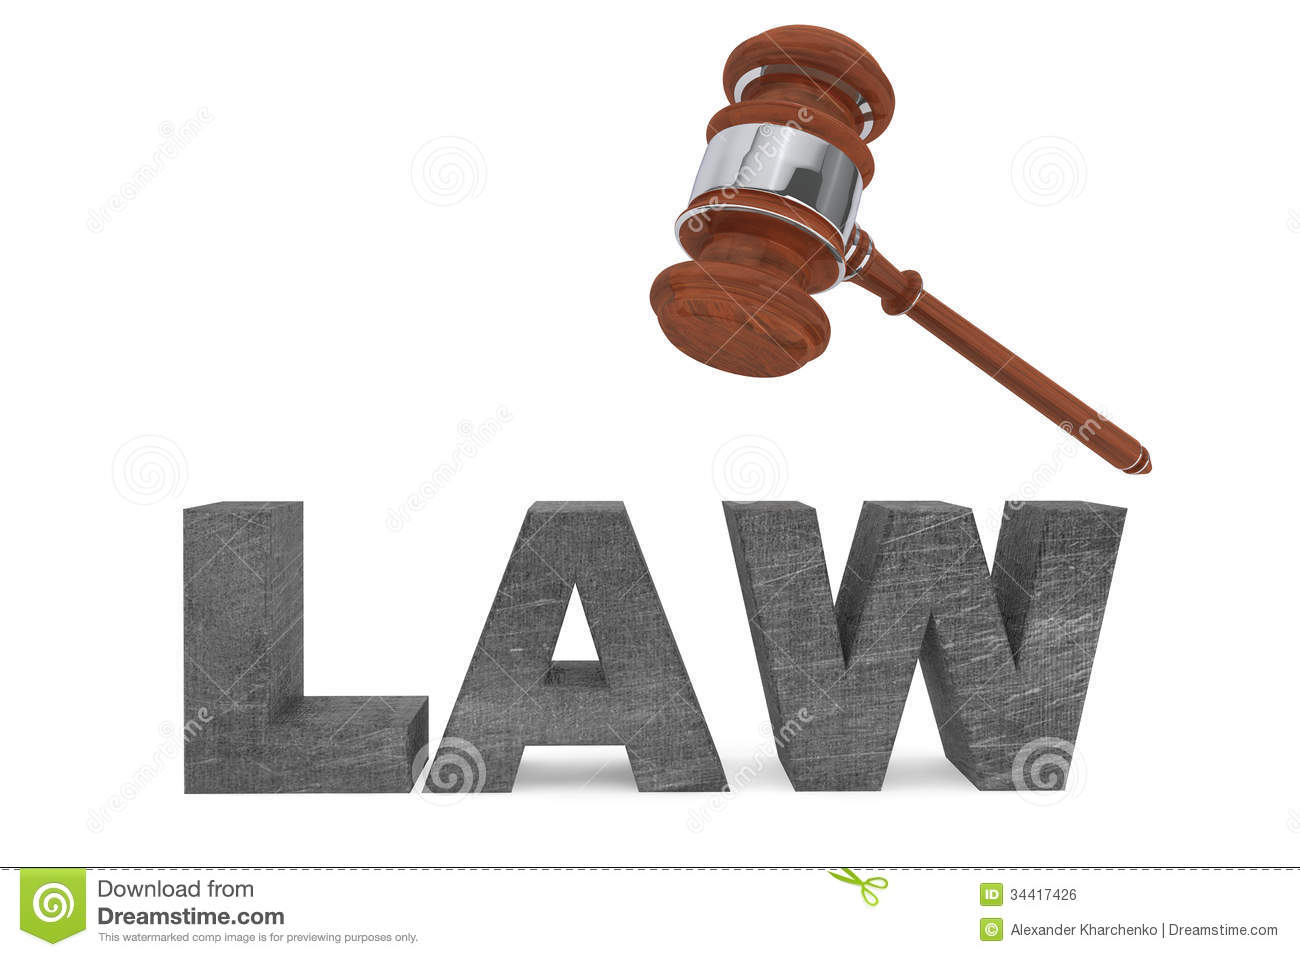 Judicial Gavel And Law Sign Royalty Free Stock Image - Image: 34417426